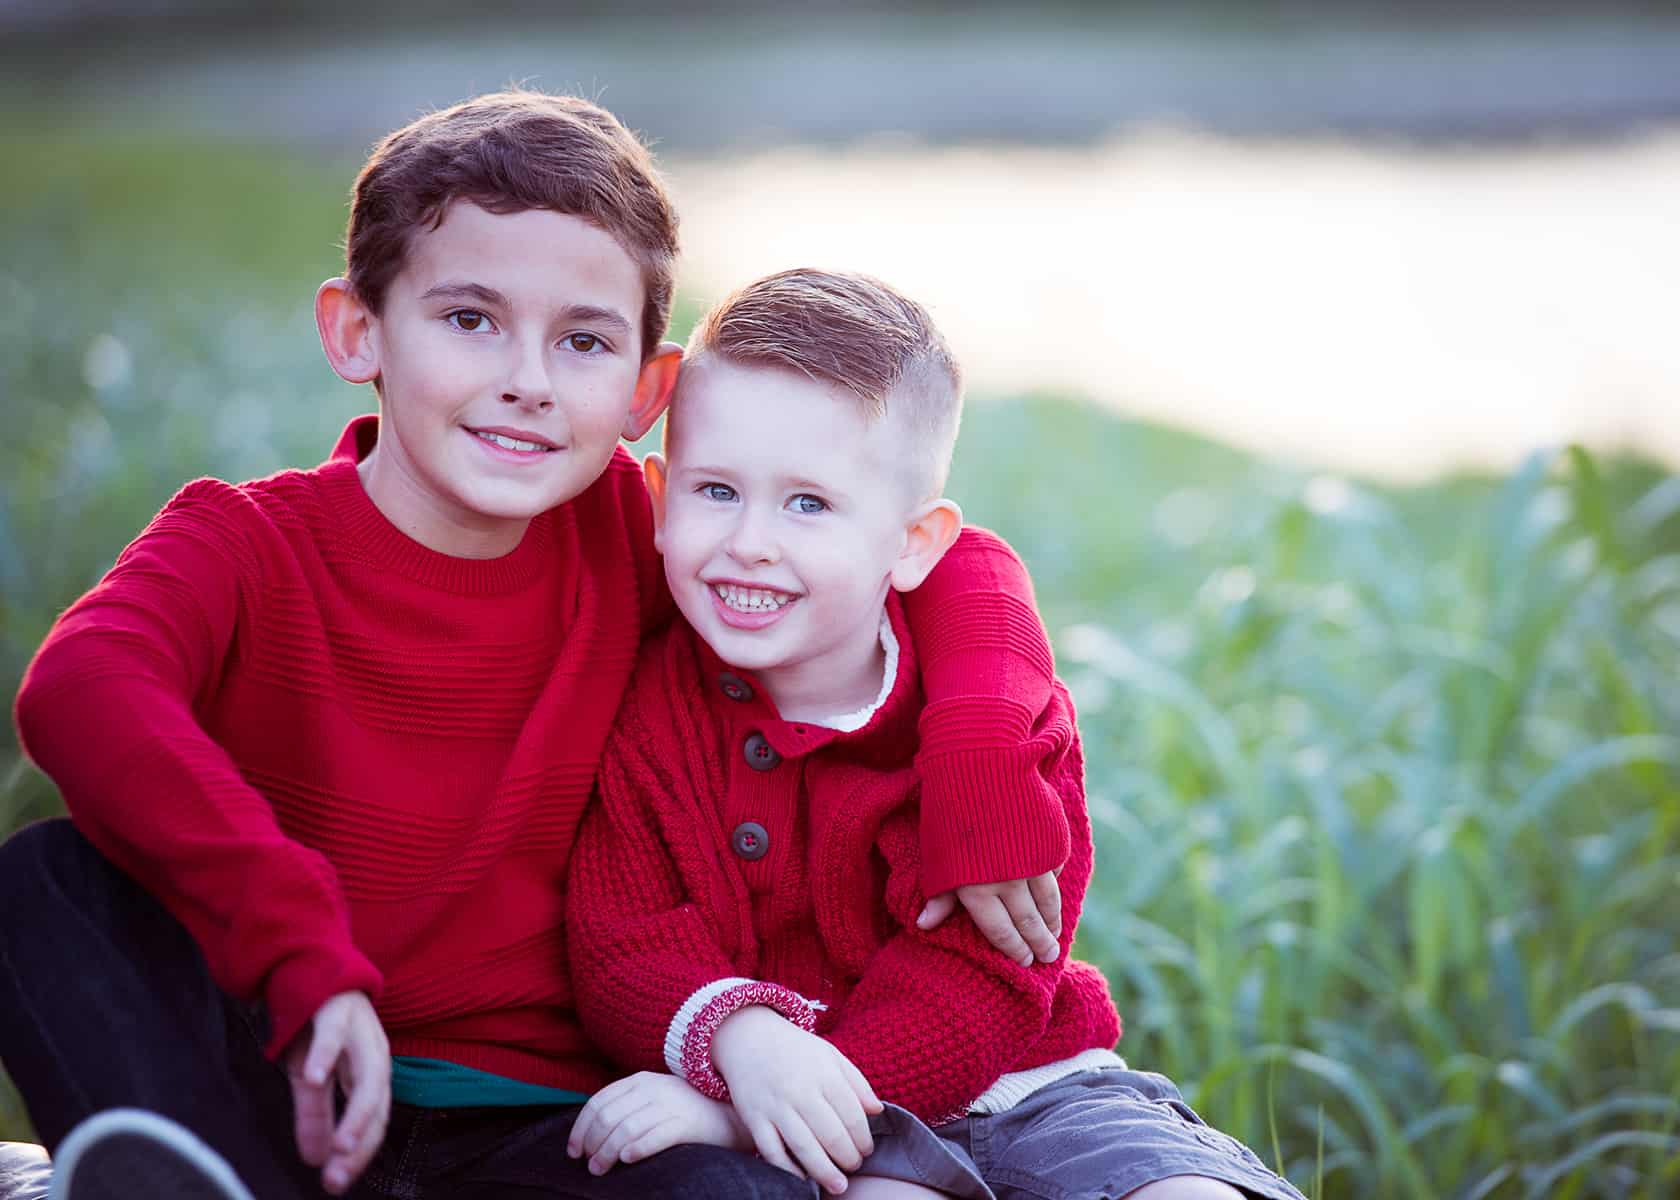 Cousins at the park for photoshoot